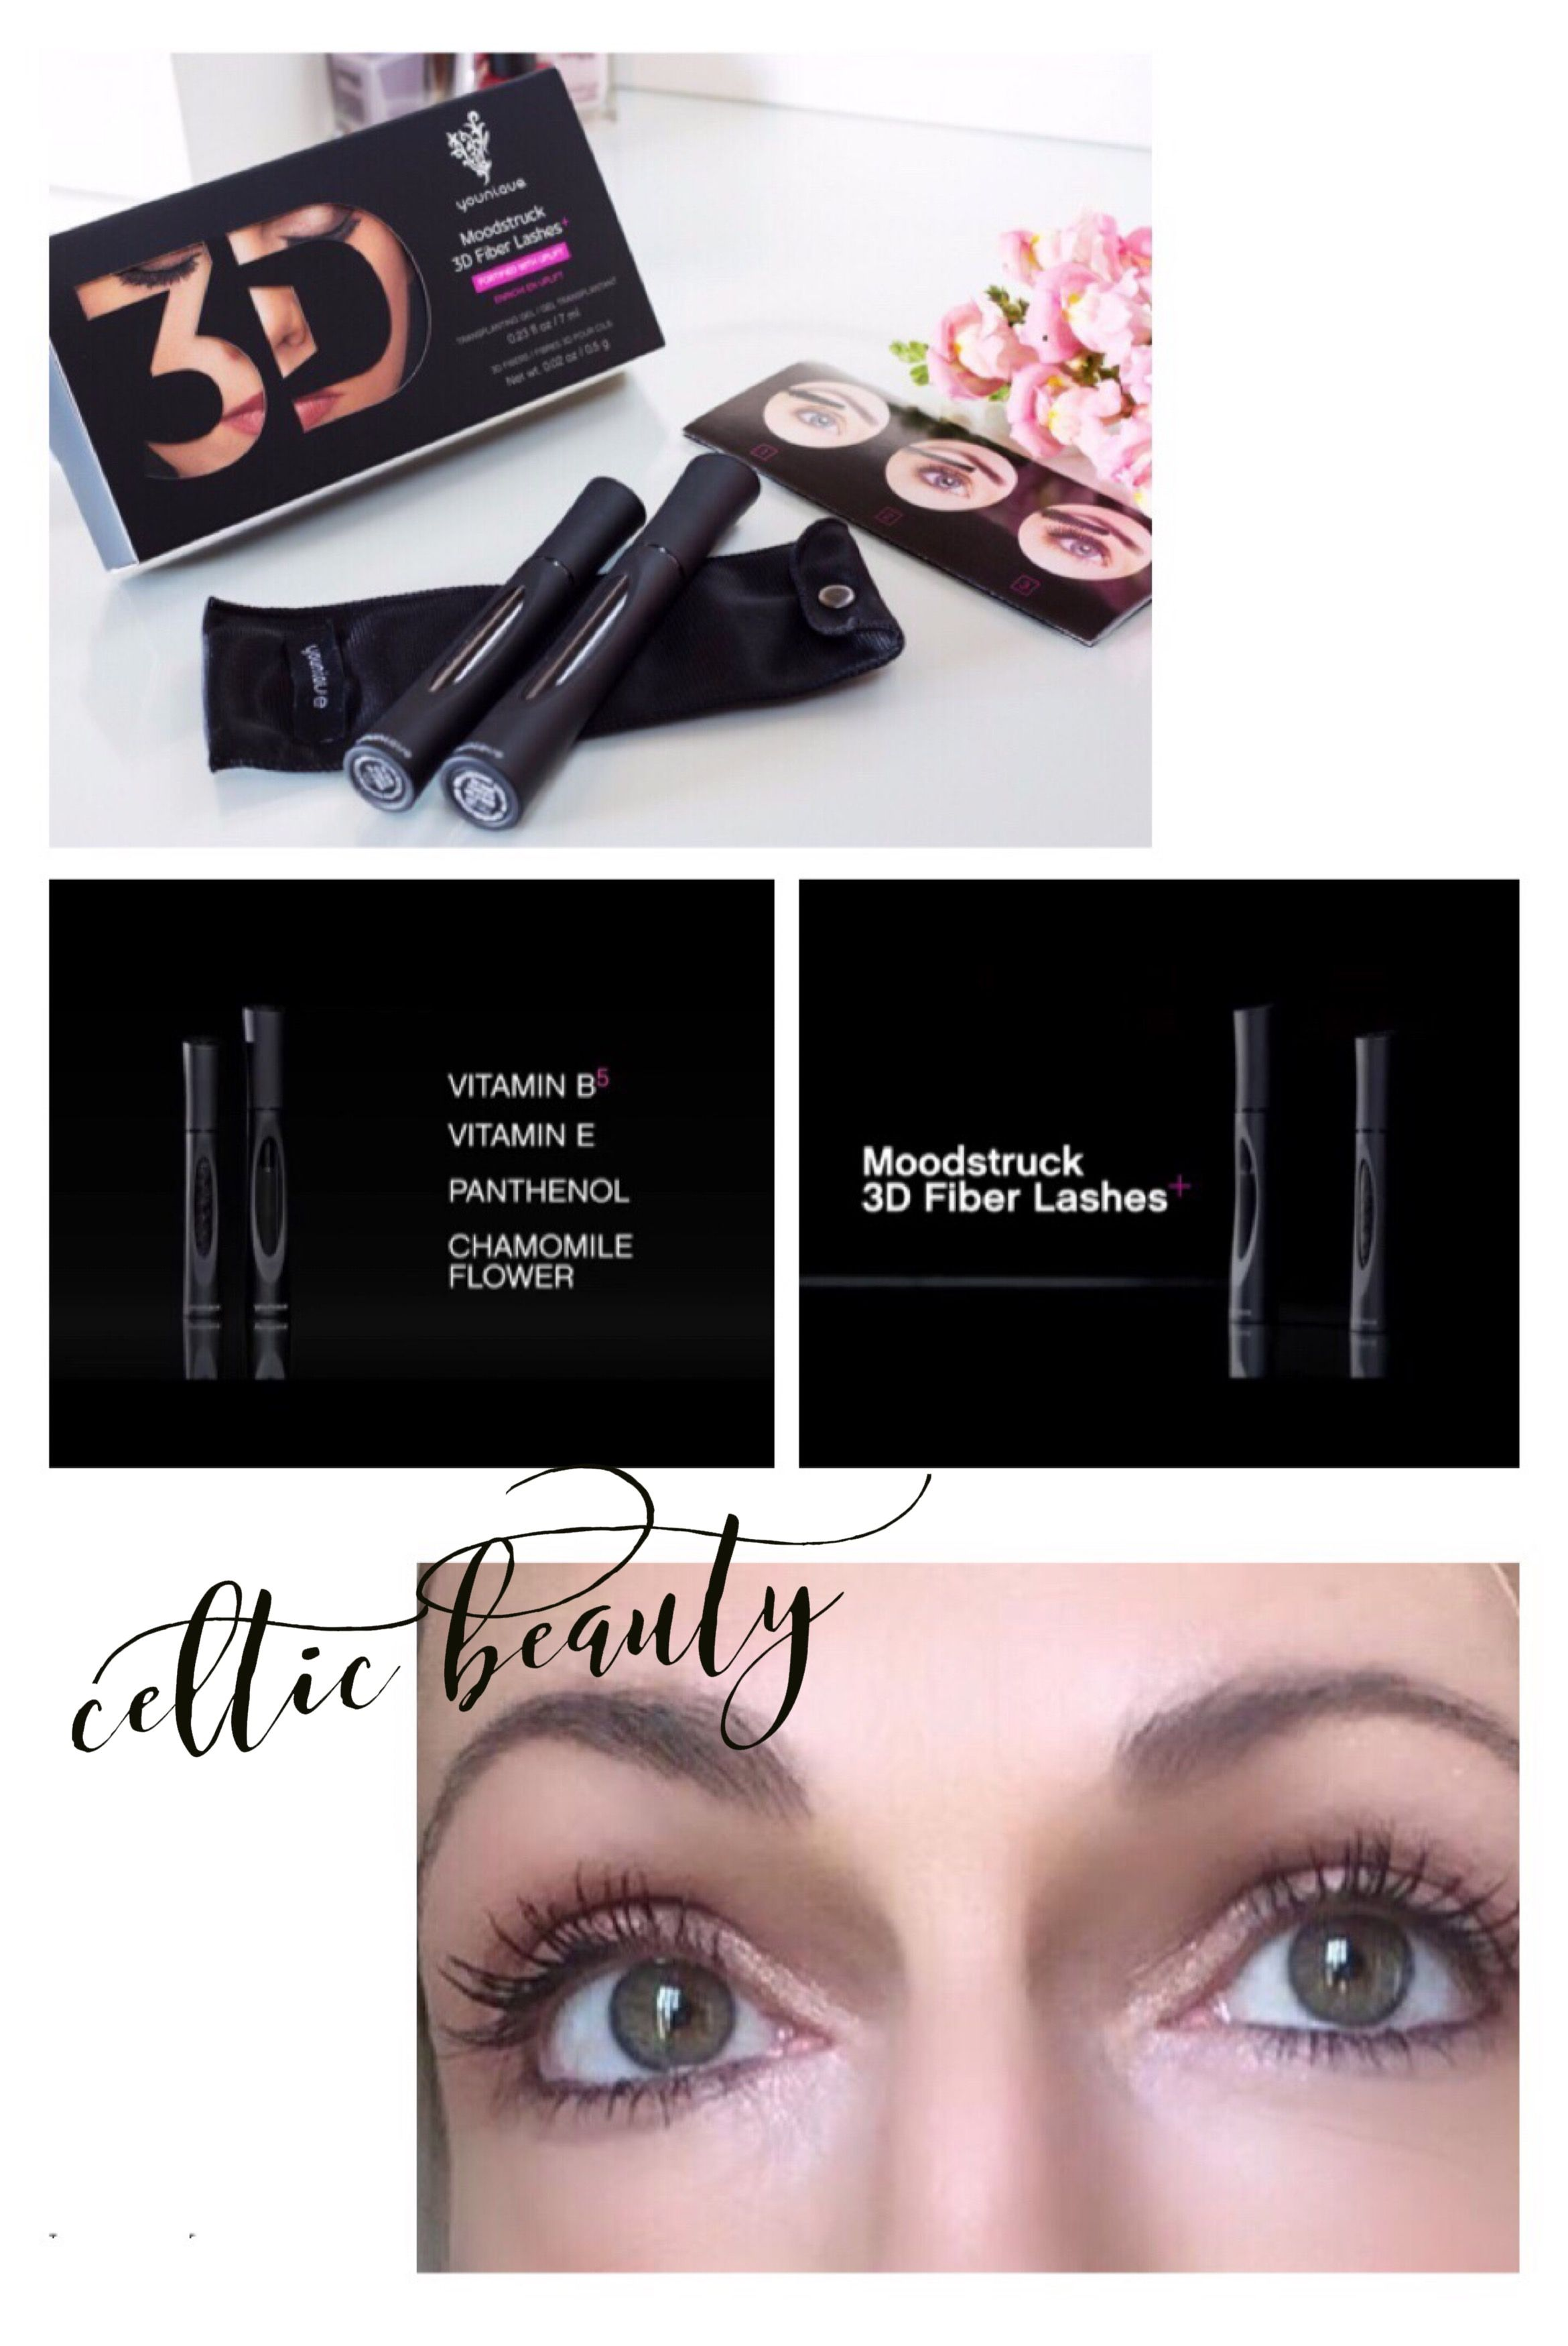 574f34b4d26 Free MOODSTRUCK 3D FIBER LASHES+™ Lash Enhancer PromotionOverviewPresenters  and customers who spend at least $100 USD will receive a free, ...